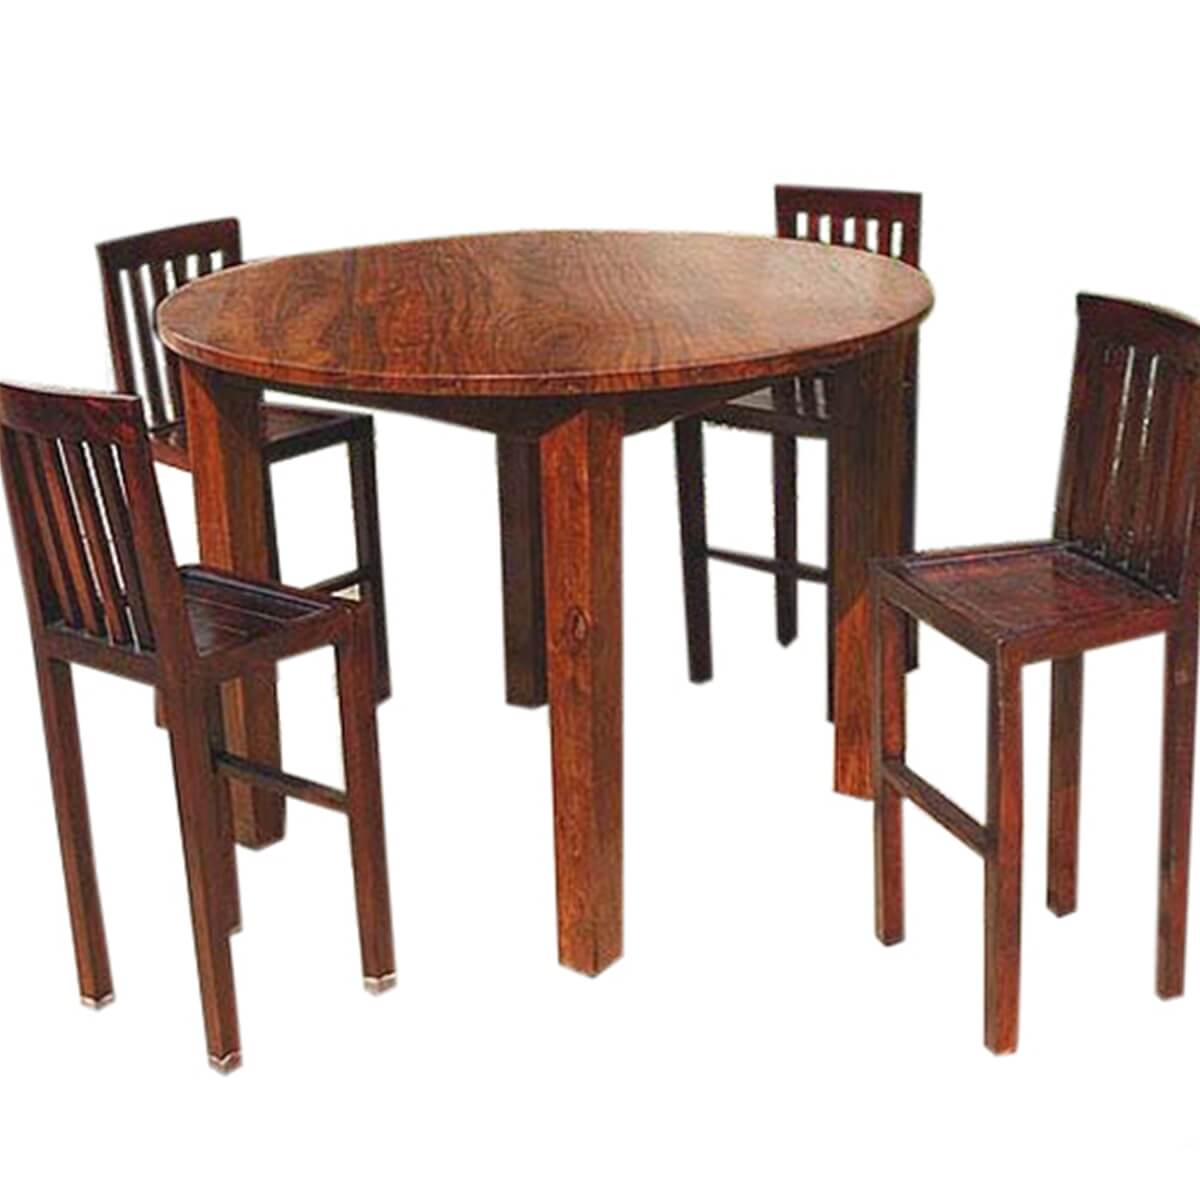 Nevada 5 pc Contemporary Counter Height Round Dining Table  : 16253 from www.sierralivingconcepts.com size 1200 x 1200 jpeg 323kB